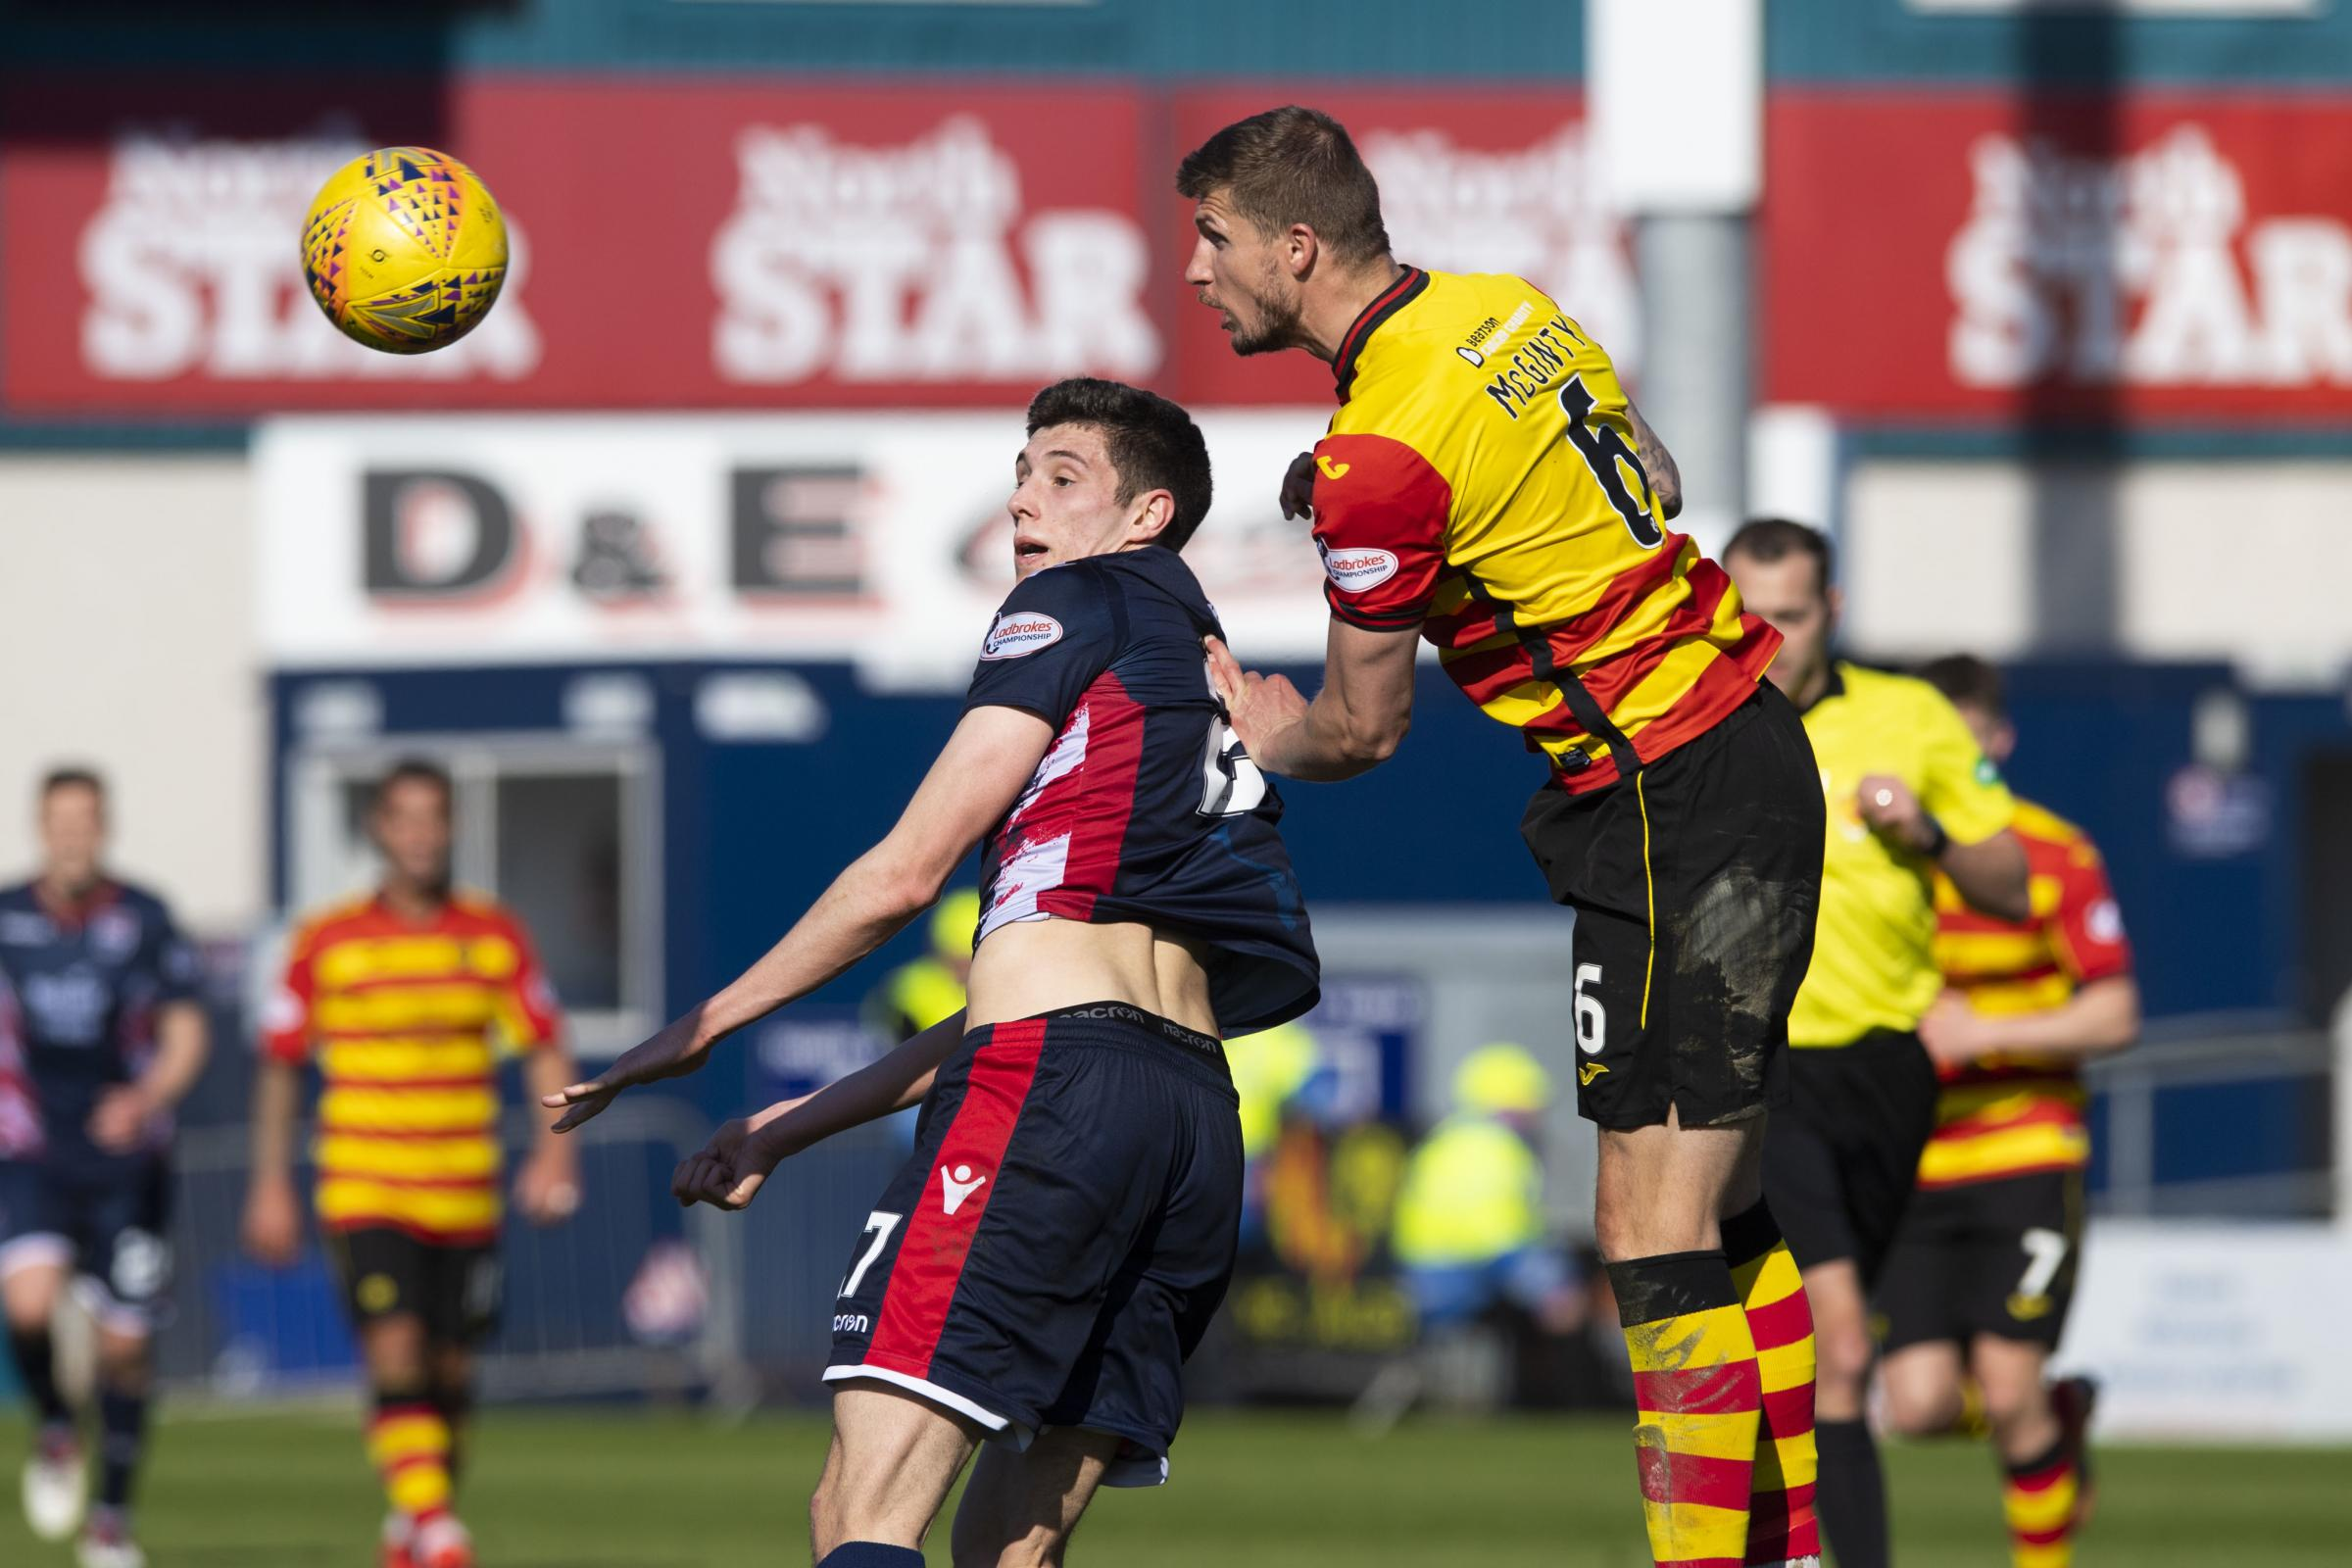 Ross County 0 Partick Thistle 0: Sean McGinty can't face another 'horrible' relegation